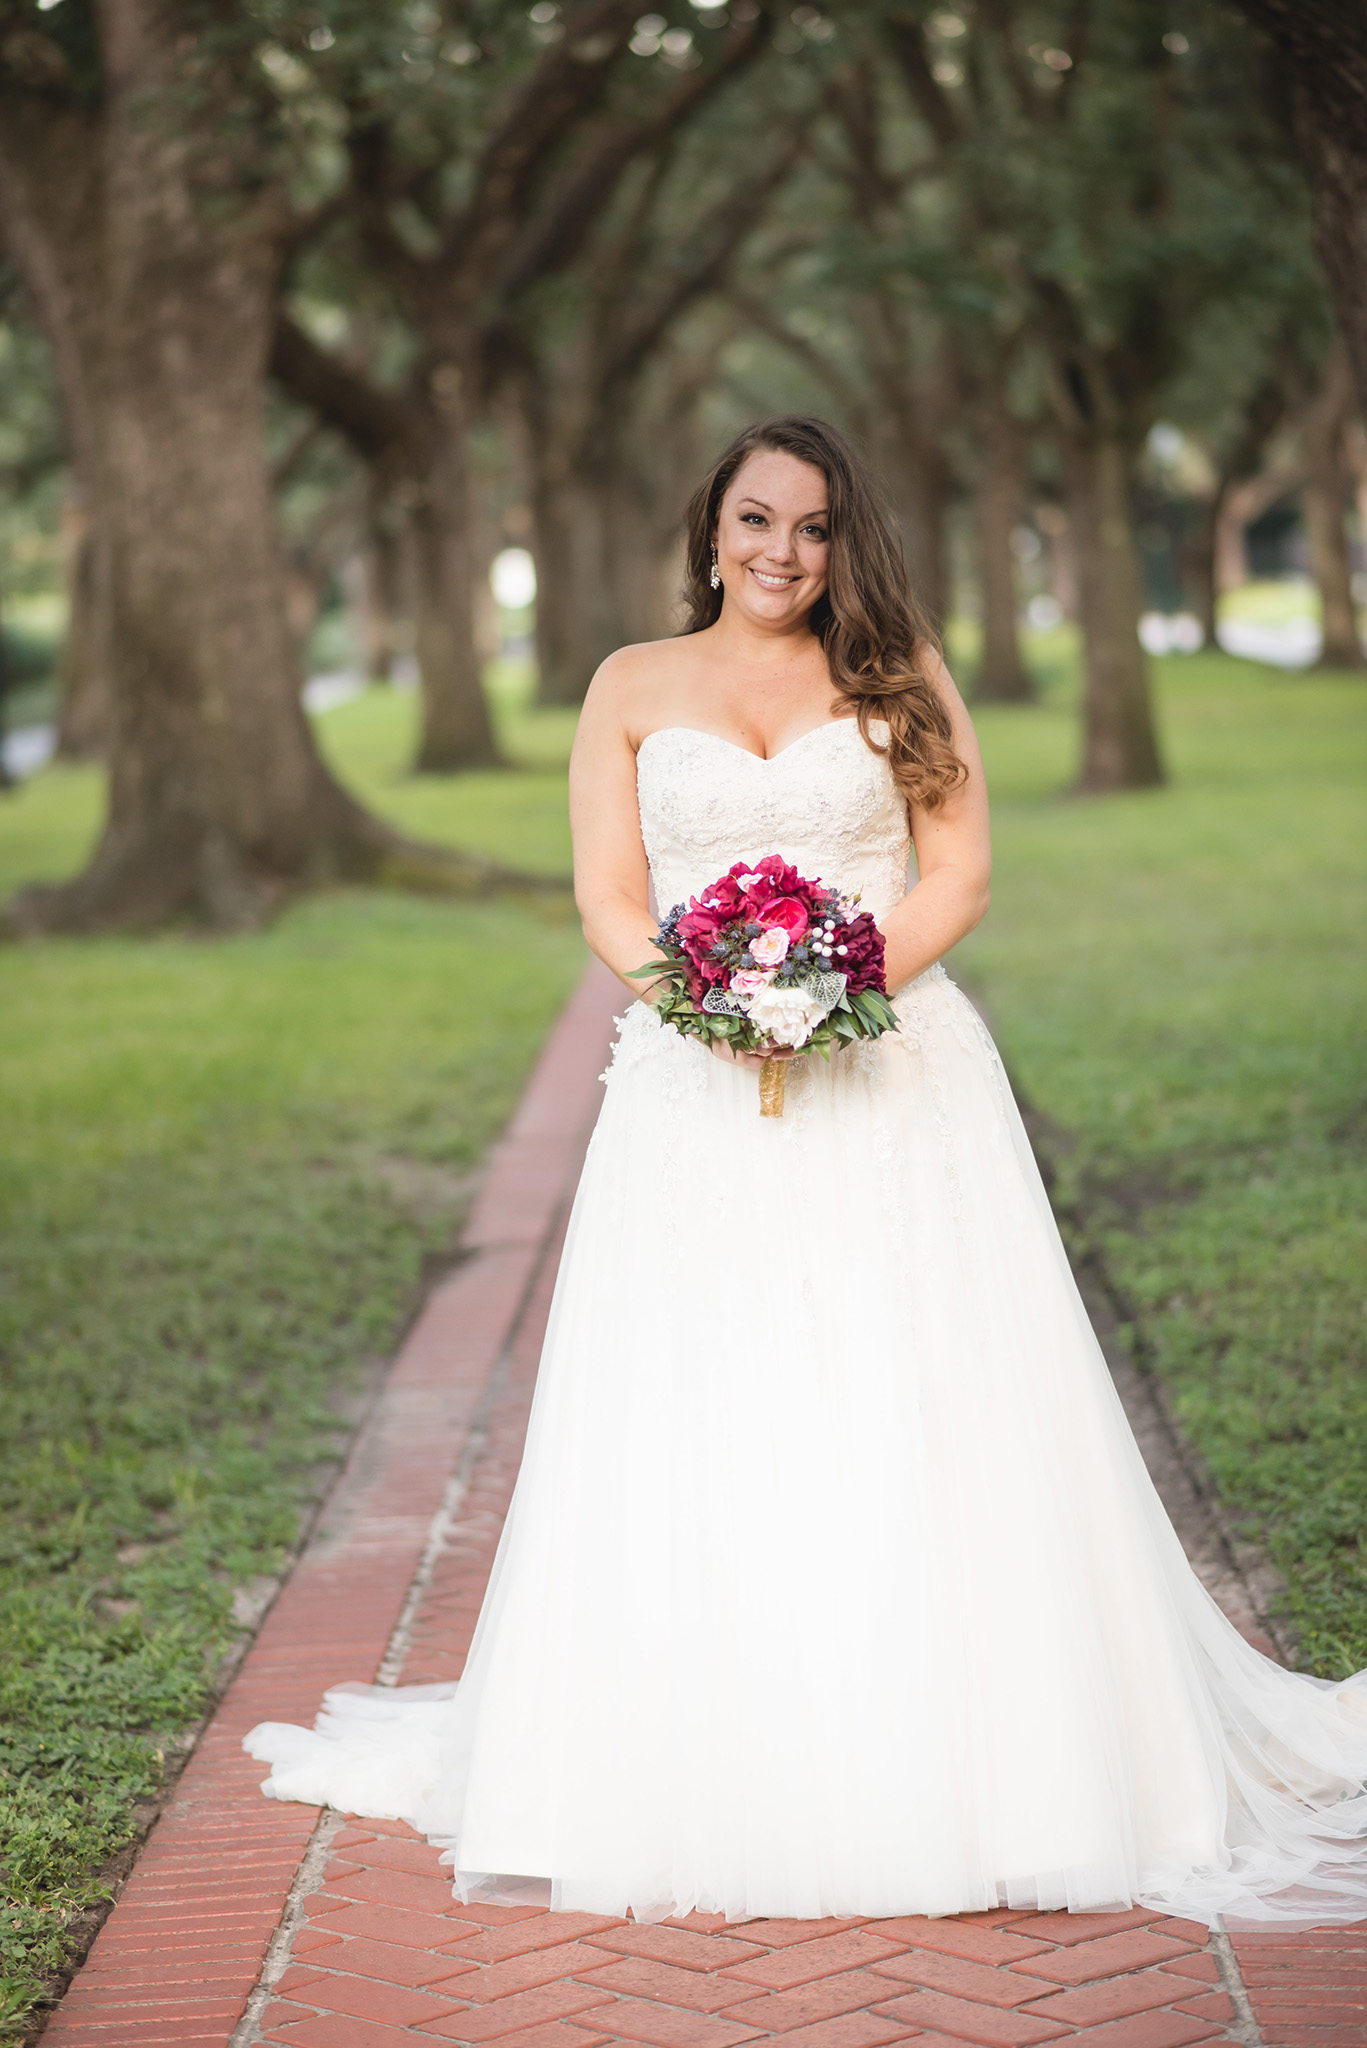 Boulevard-Oaks-Houston-Bridal-photo-session-kim-25.jpg